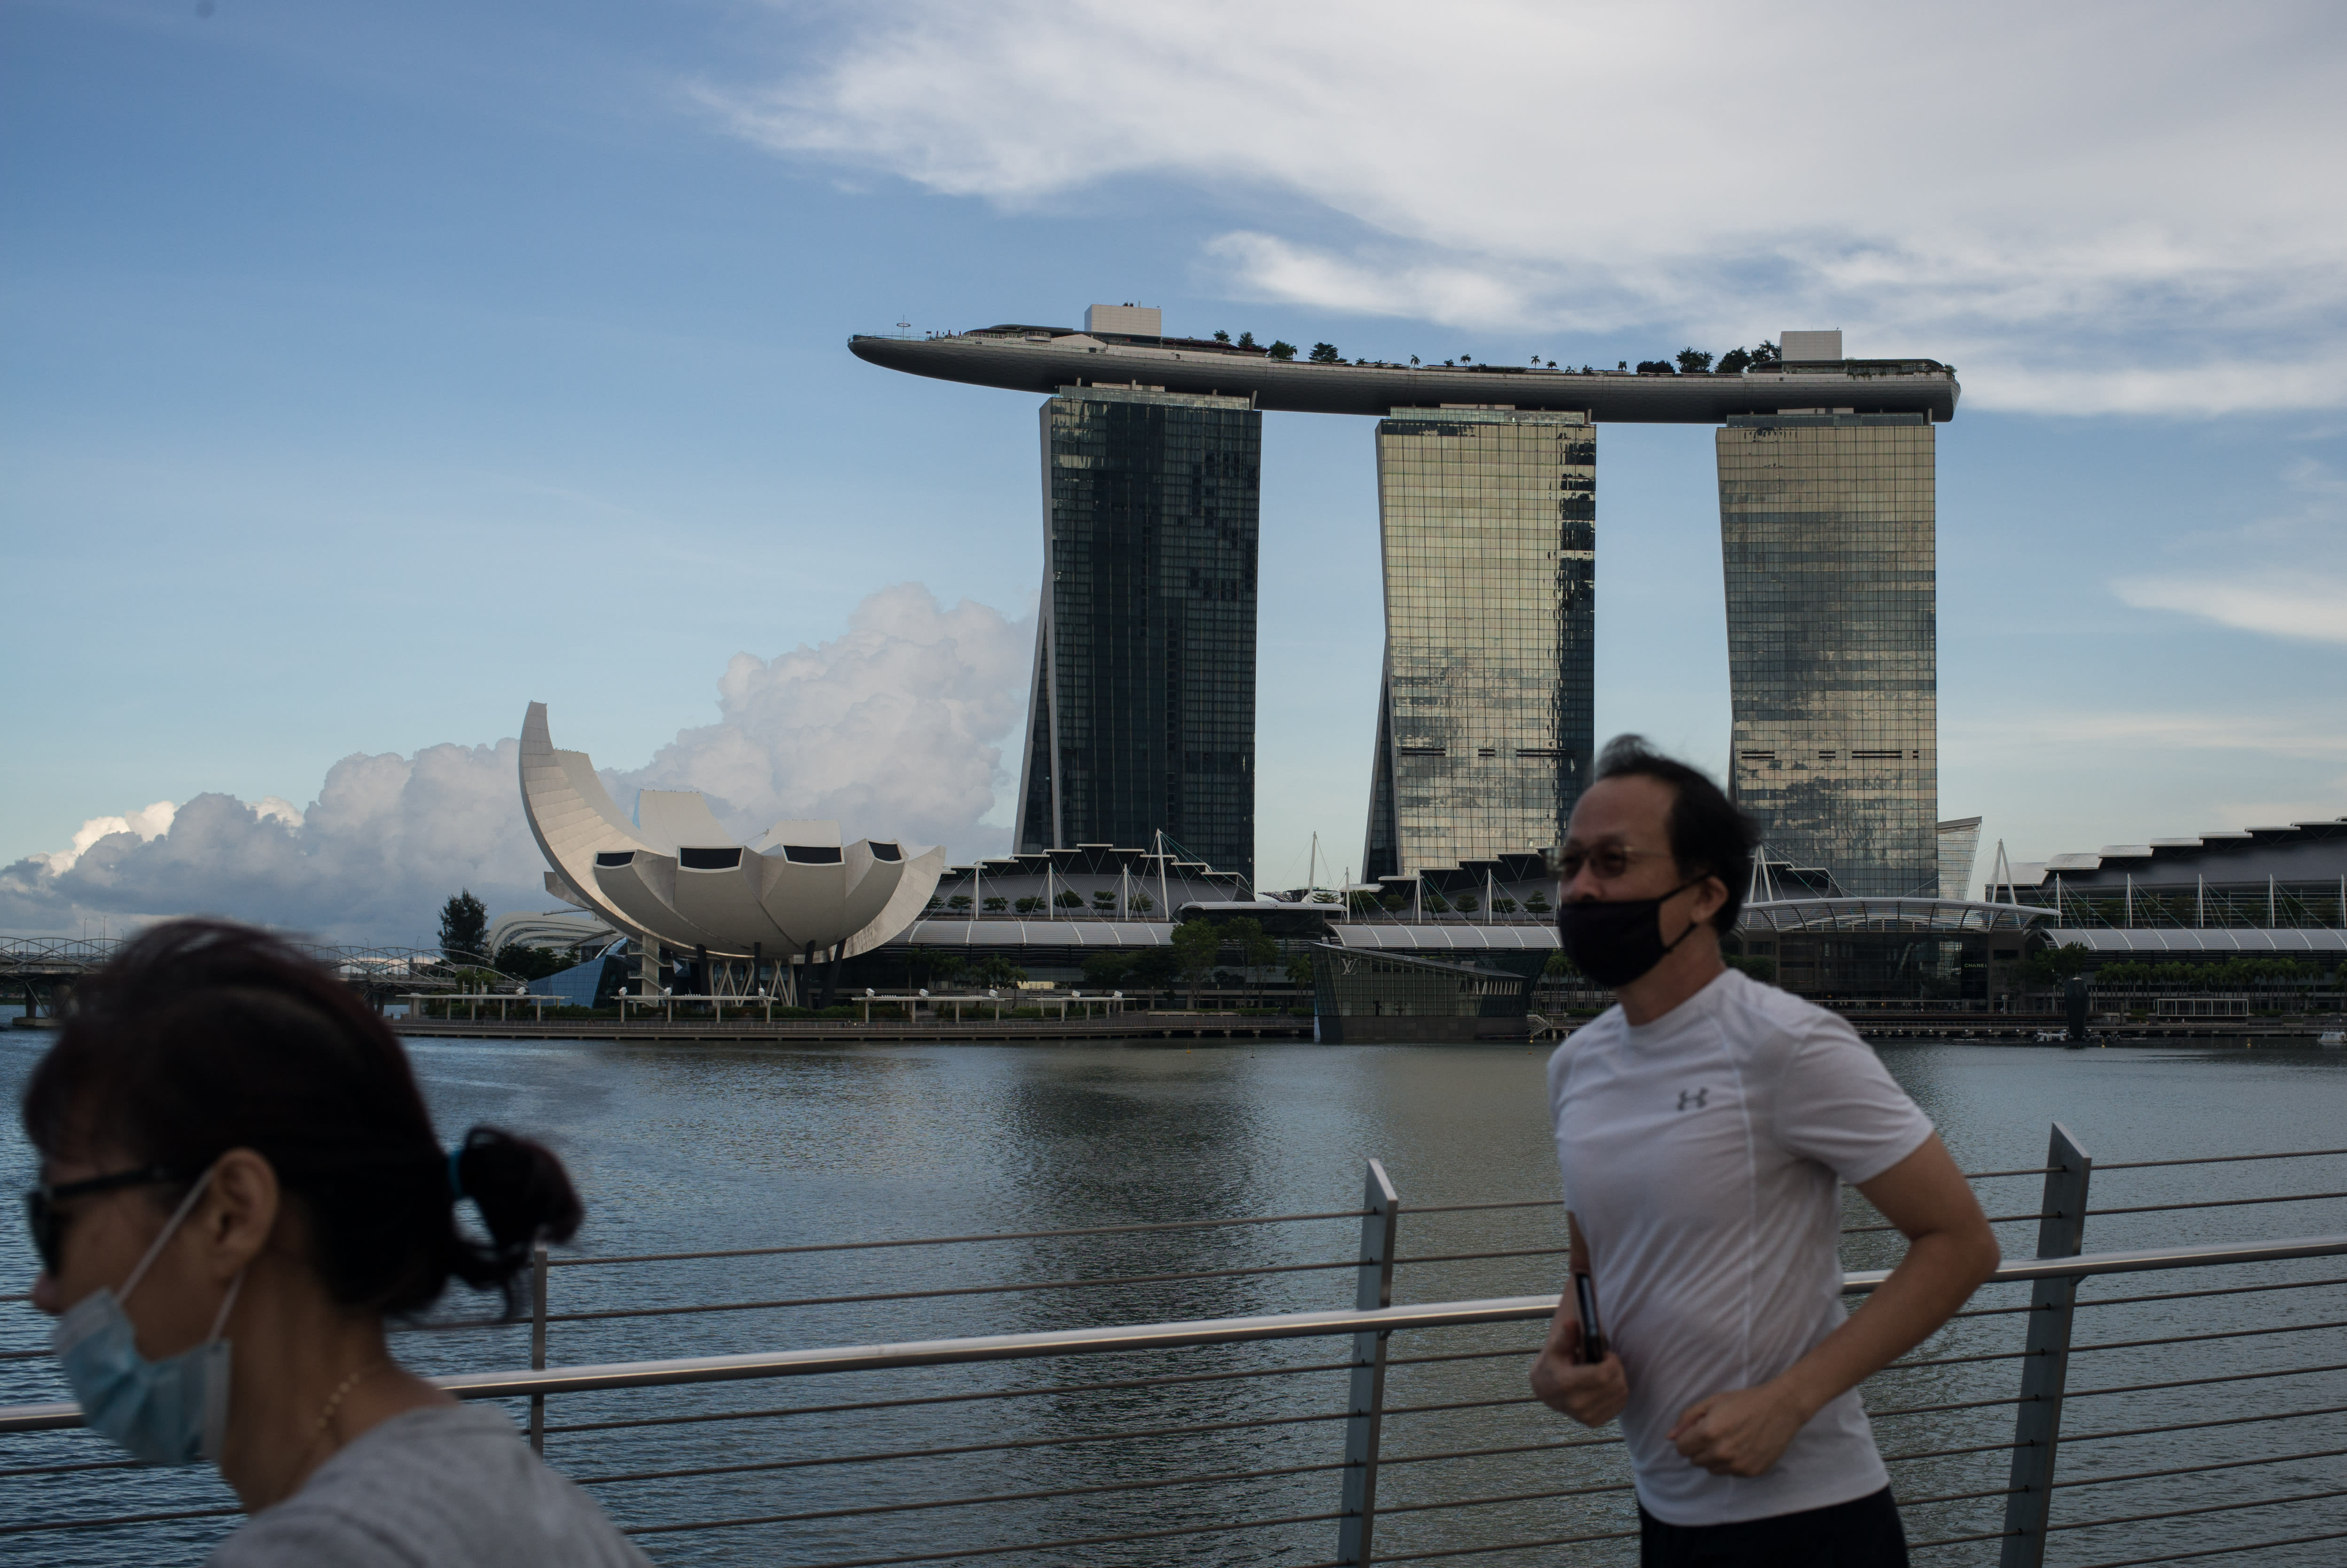 Singapore turns to domestic tourism as travel sector reels from coronavirus